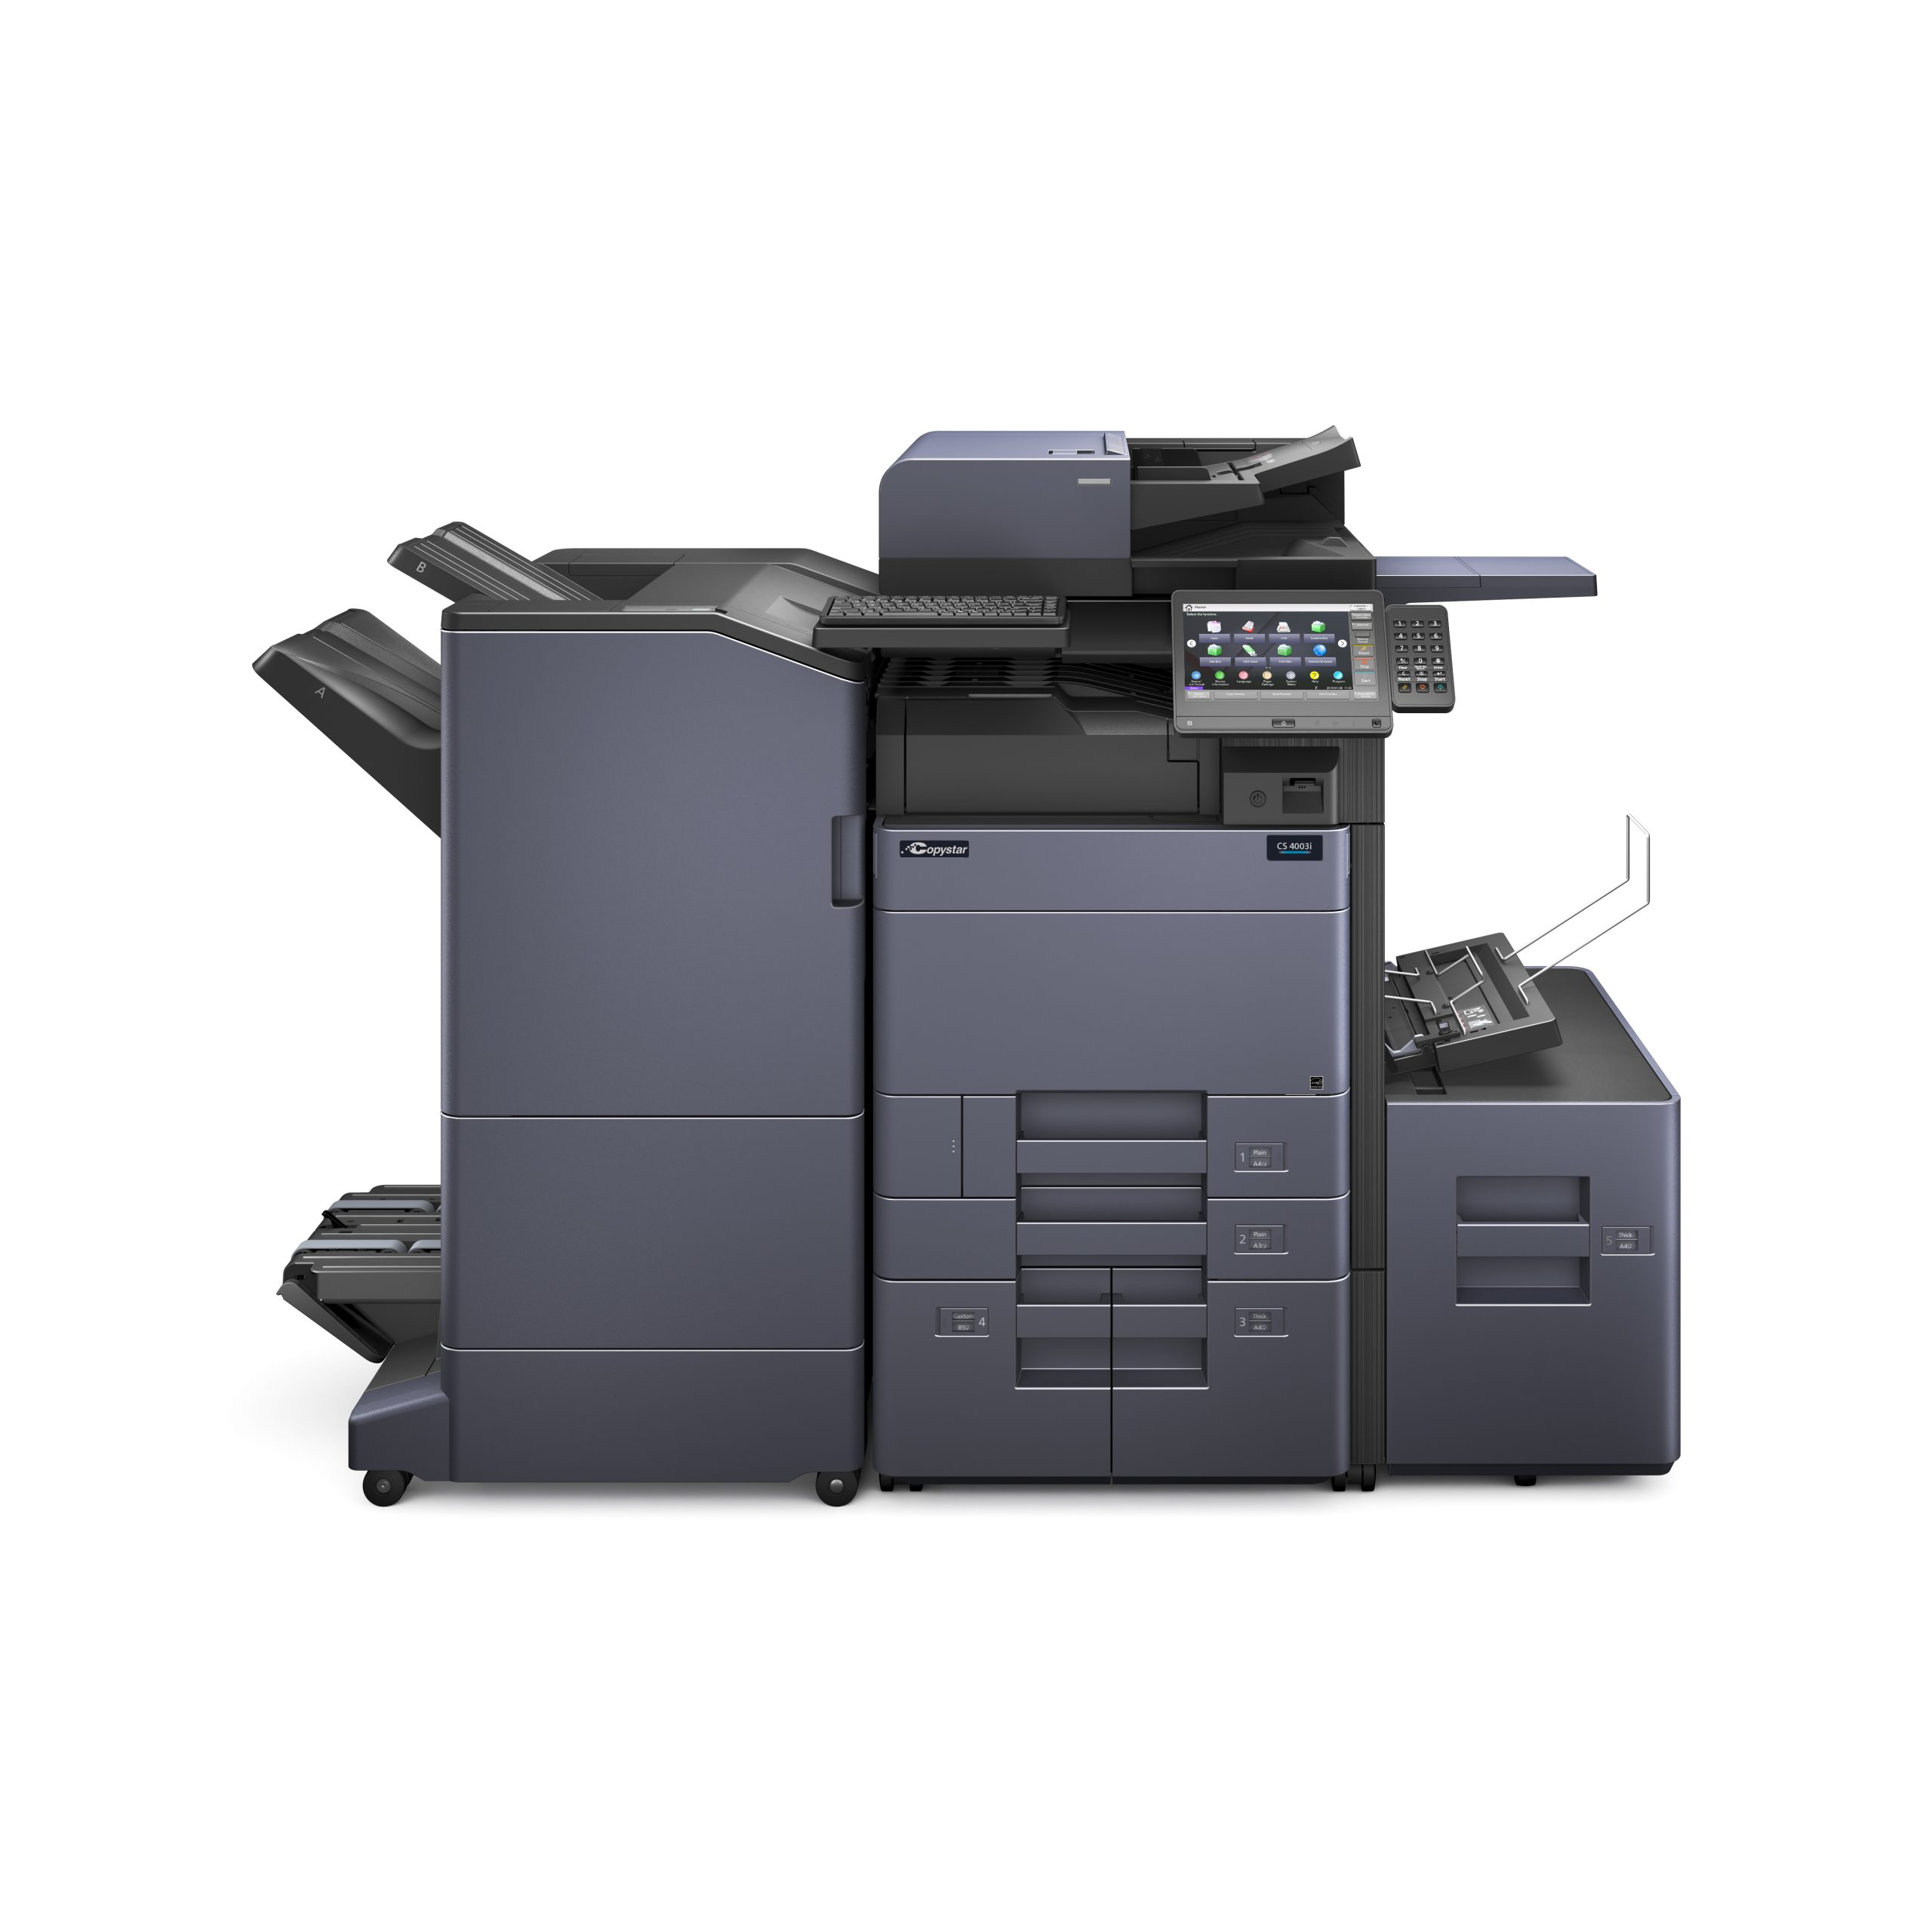 kyocera CS_4003i Copier Leasing Companies Florida